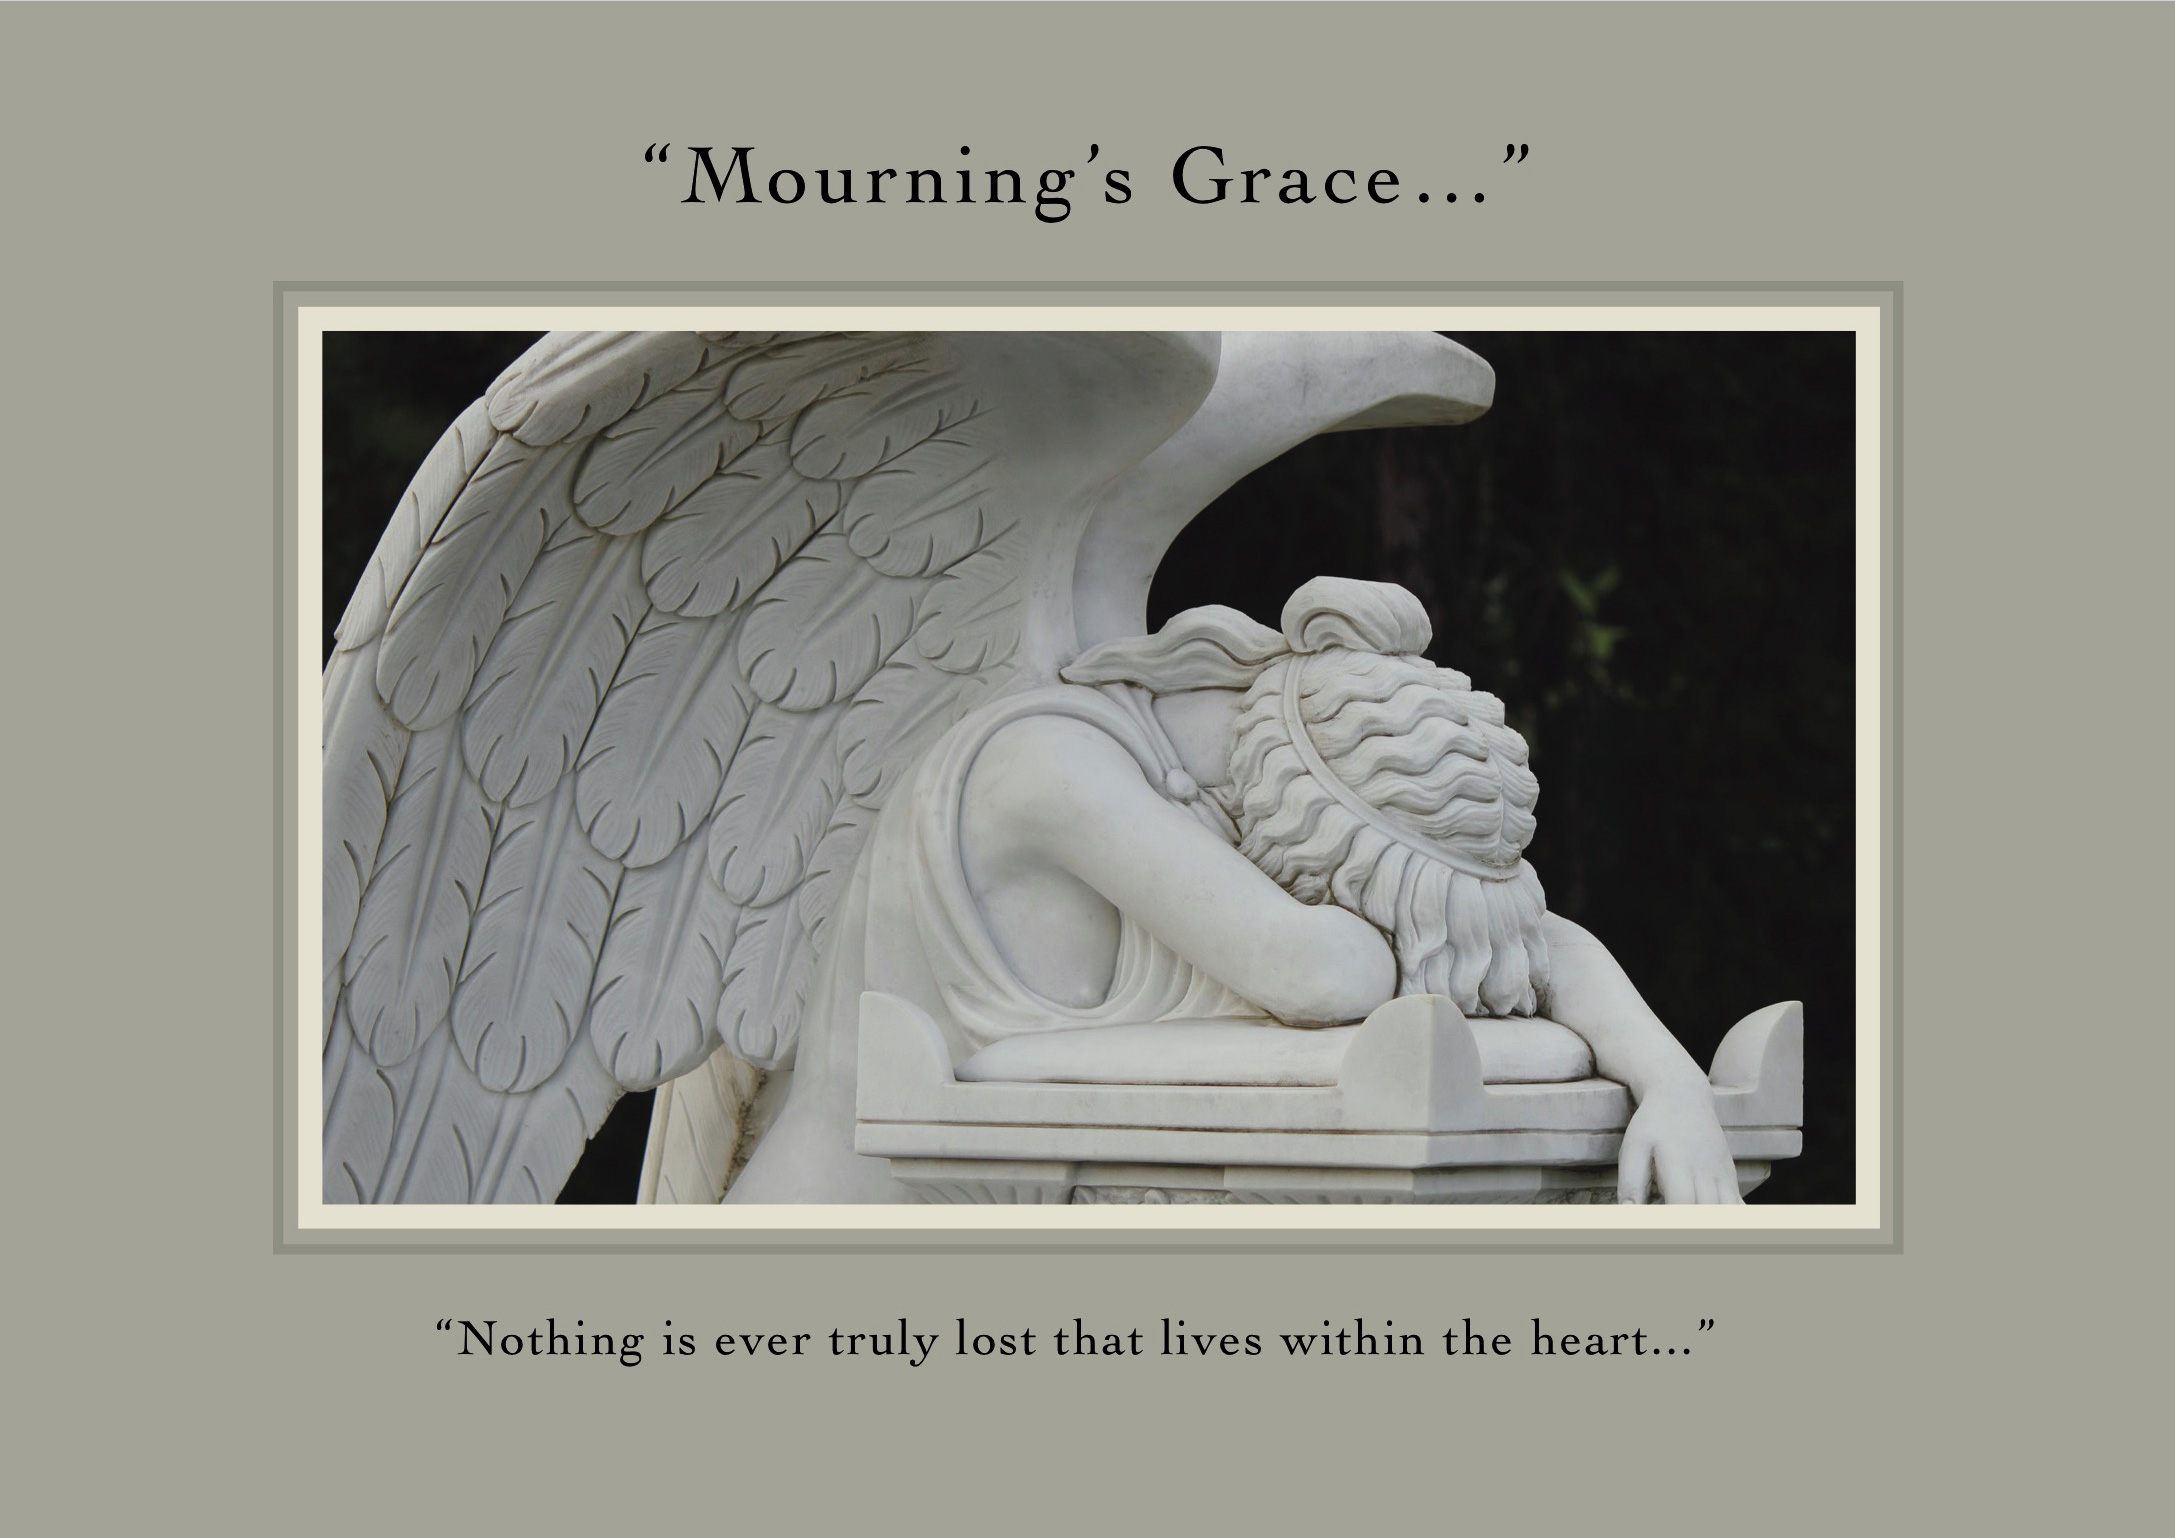 Mourning's-Grace_Weeping-Angel-3